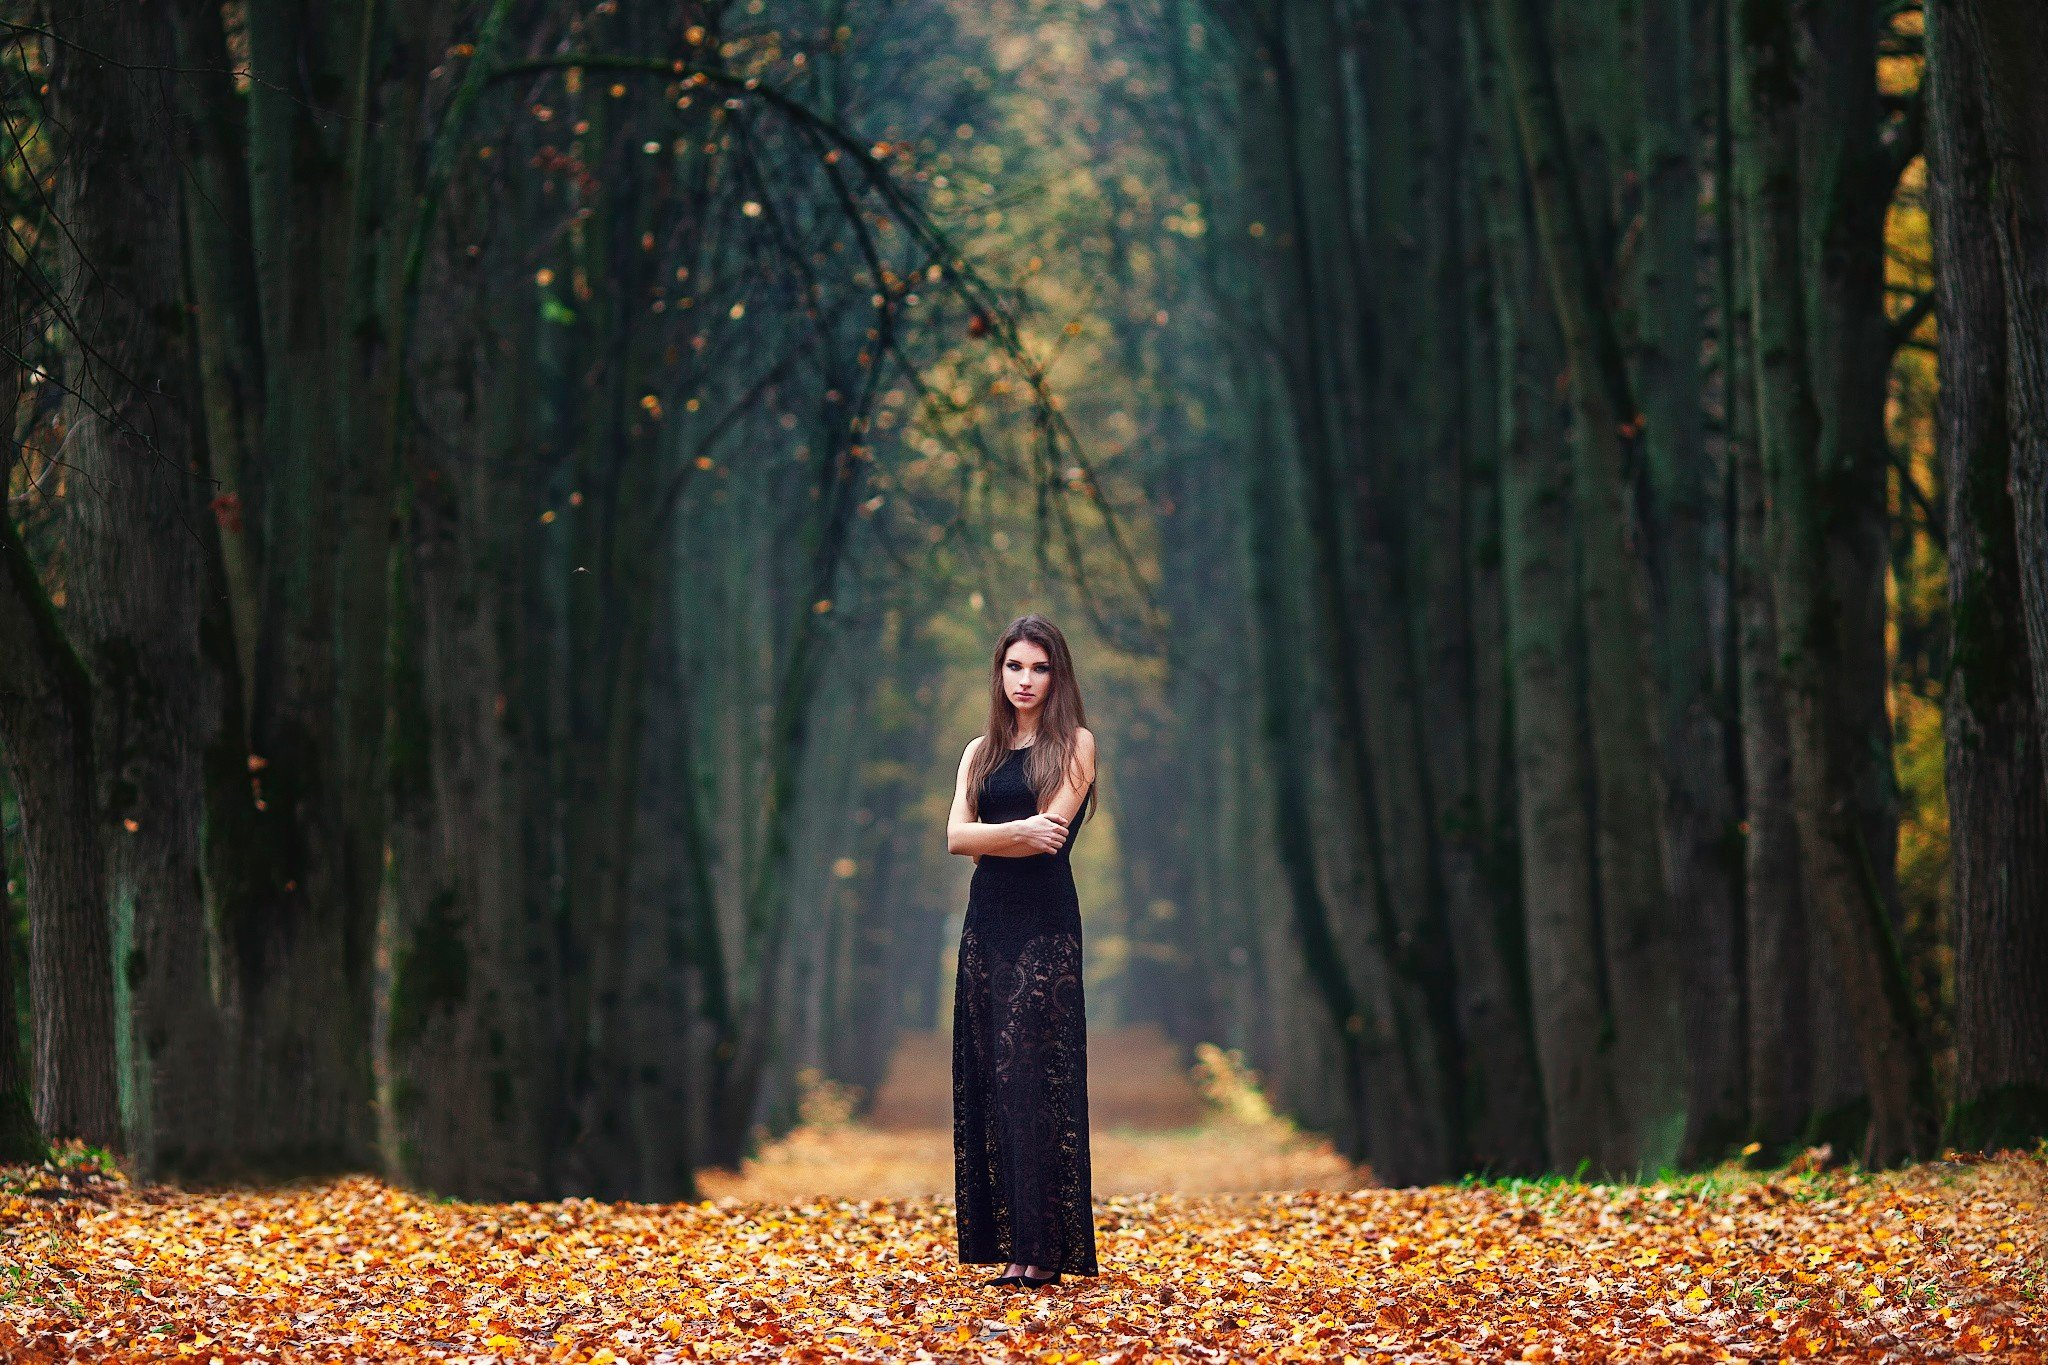 Women, Brunette, Fall, Women Outdoors, Dress, Trees Hd